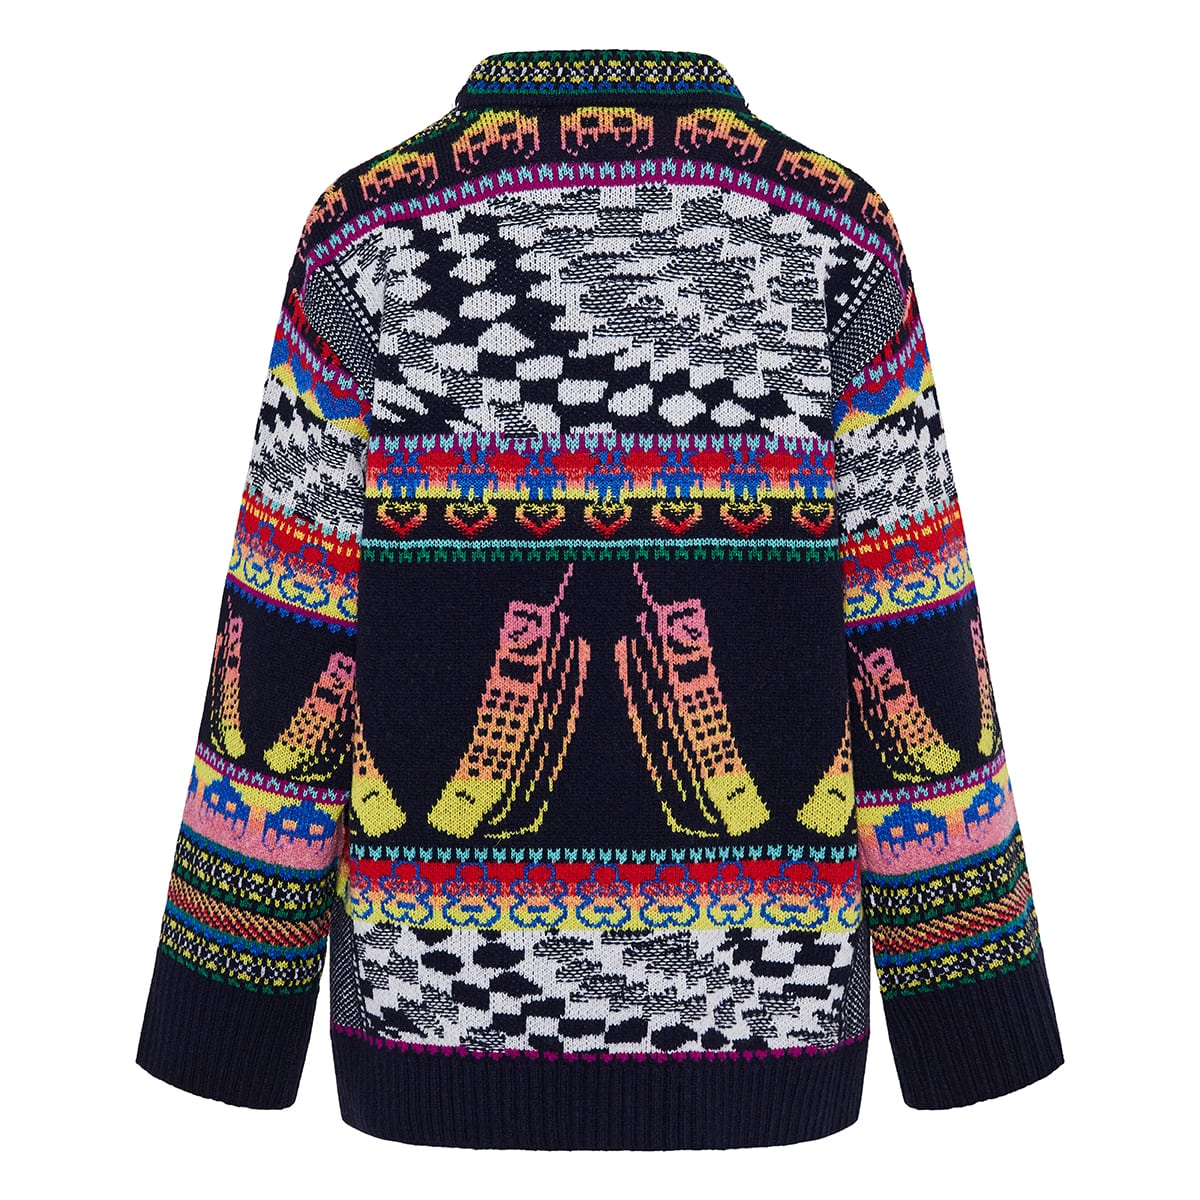 Keep In Touch oversized jacquard sweater